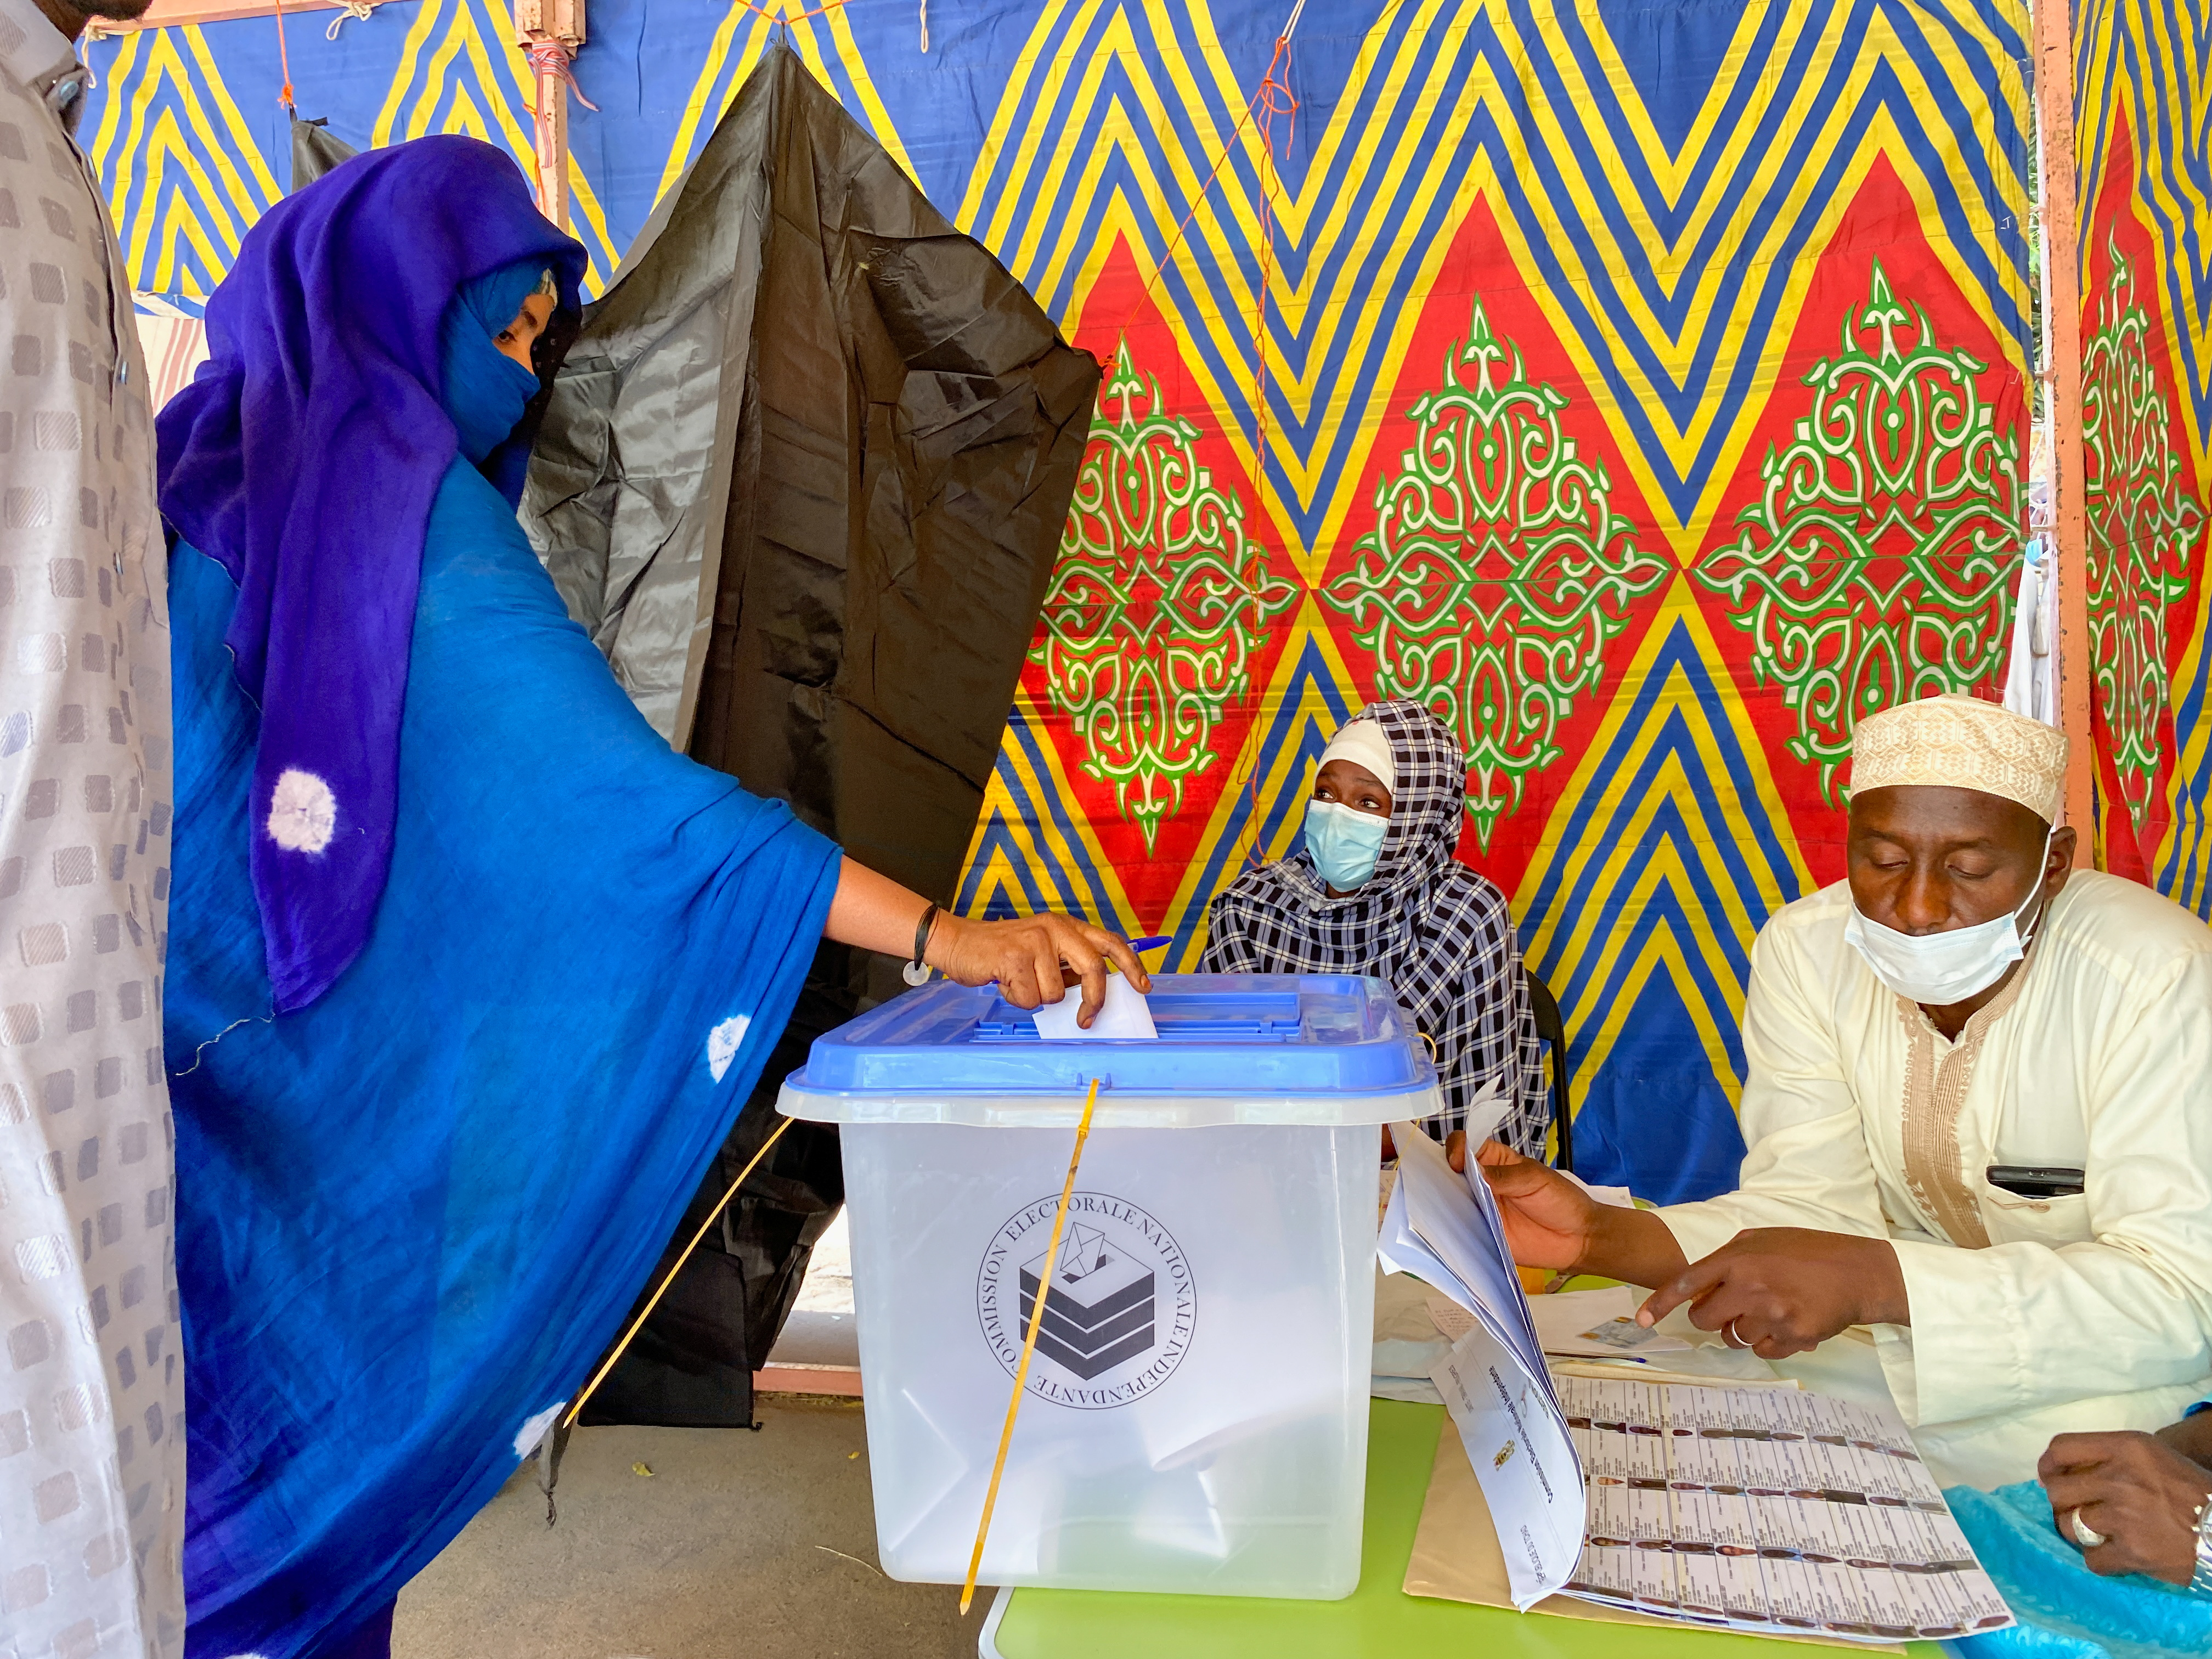 A woman casts her ballot at the pooling station during the presidential election in N'Djamena, Chad April 11, 2021. REUTERS/ Media Coulibaly